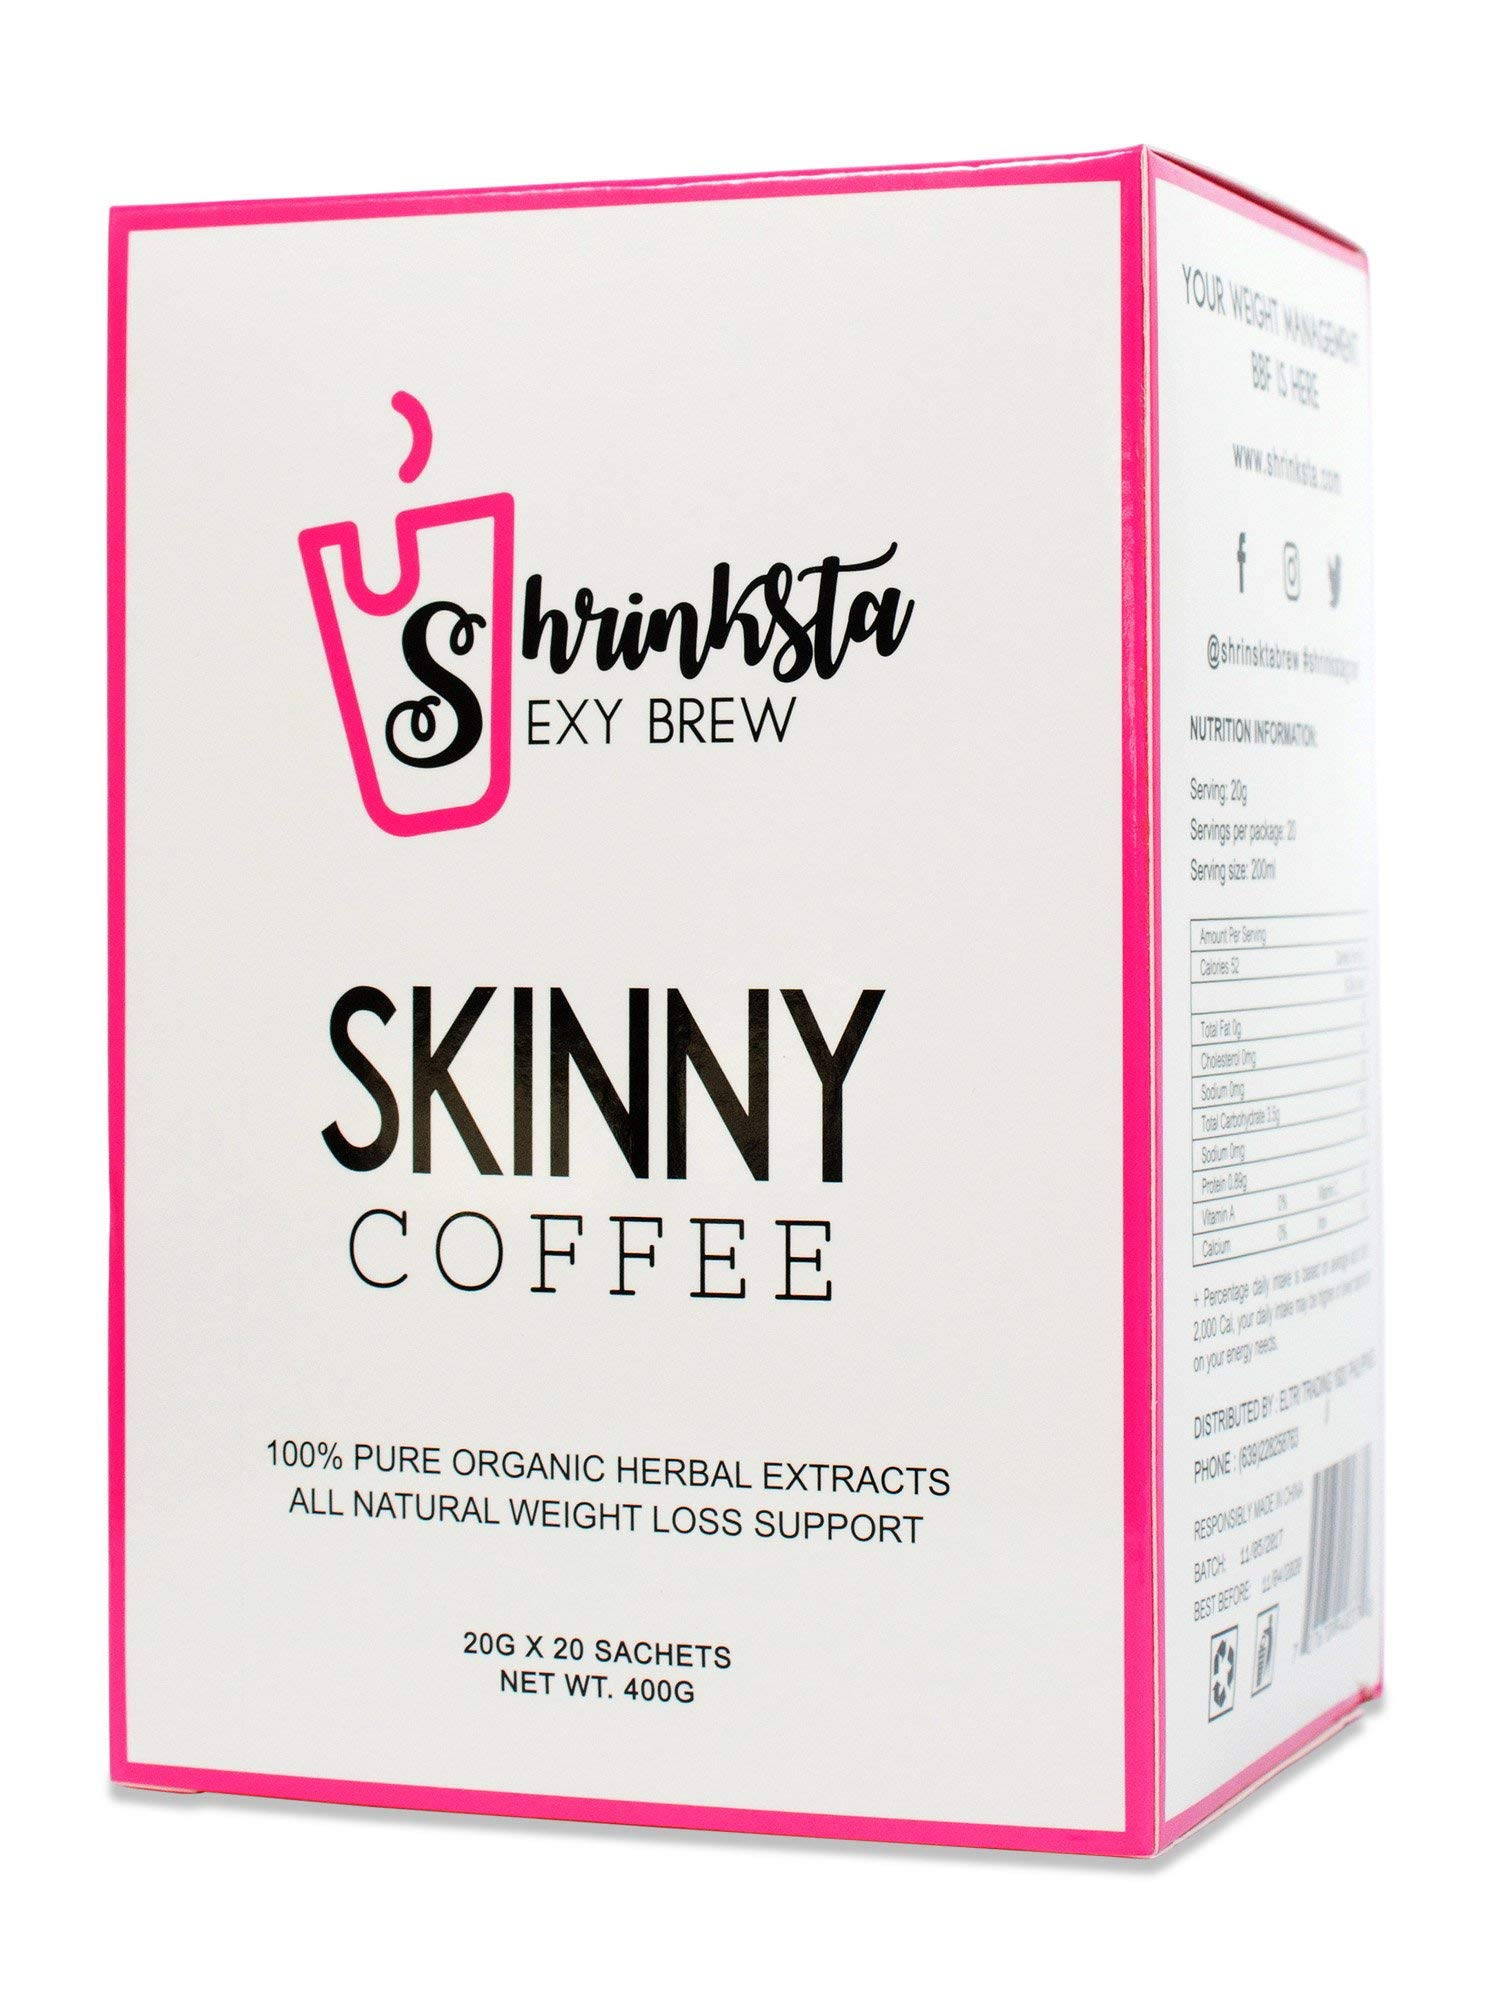 Shrinksta Organic Slimming Weightloss Coffee - All Natural, Vegan Latte, Sugar Free | Perfect On-The-Go Support For The Busy, Health-Conscious | 20 Packets a Box, 3 Flavors Available by Shrinksta